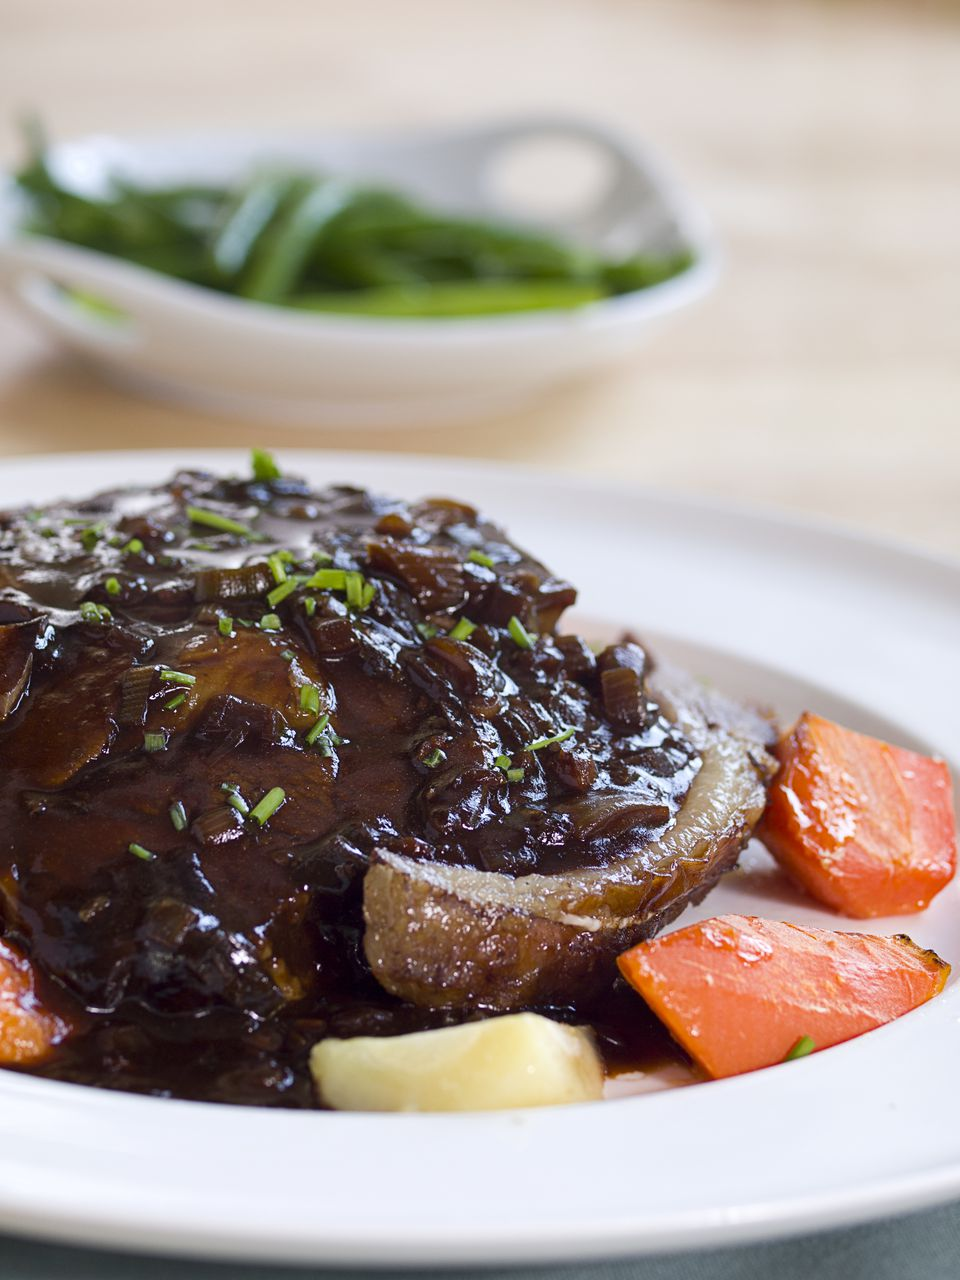 A plate of roast beef with wine sauce and vegetables